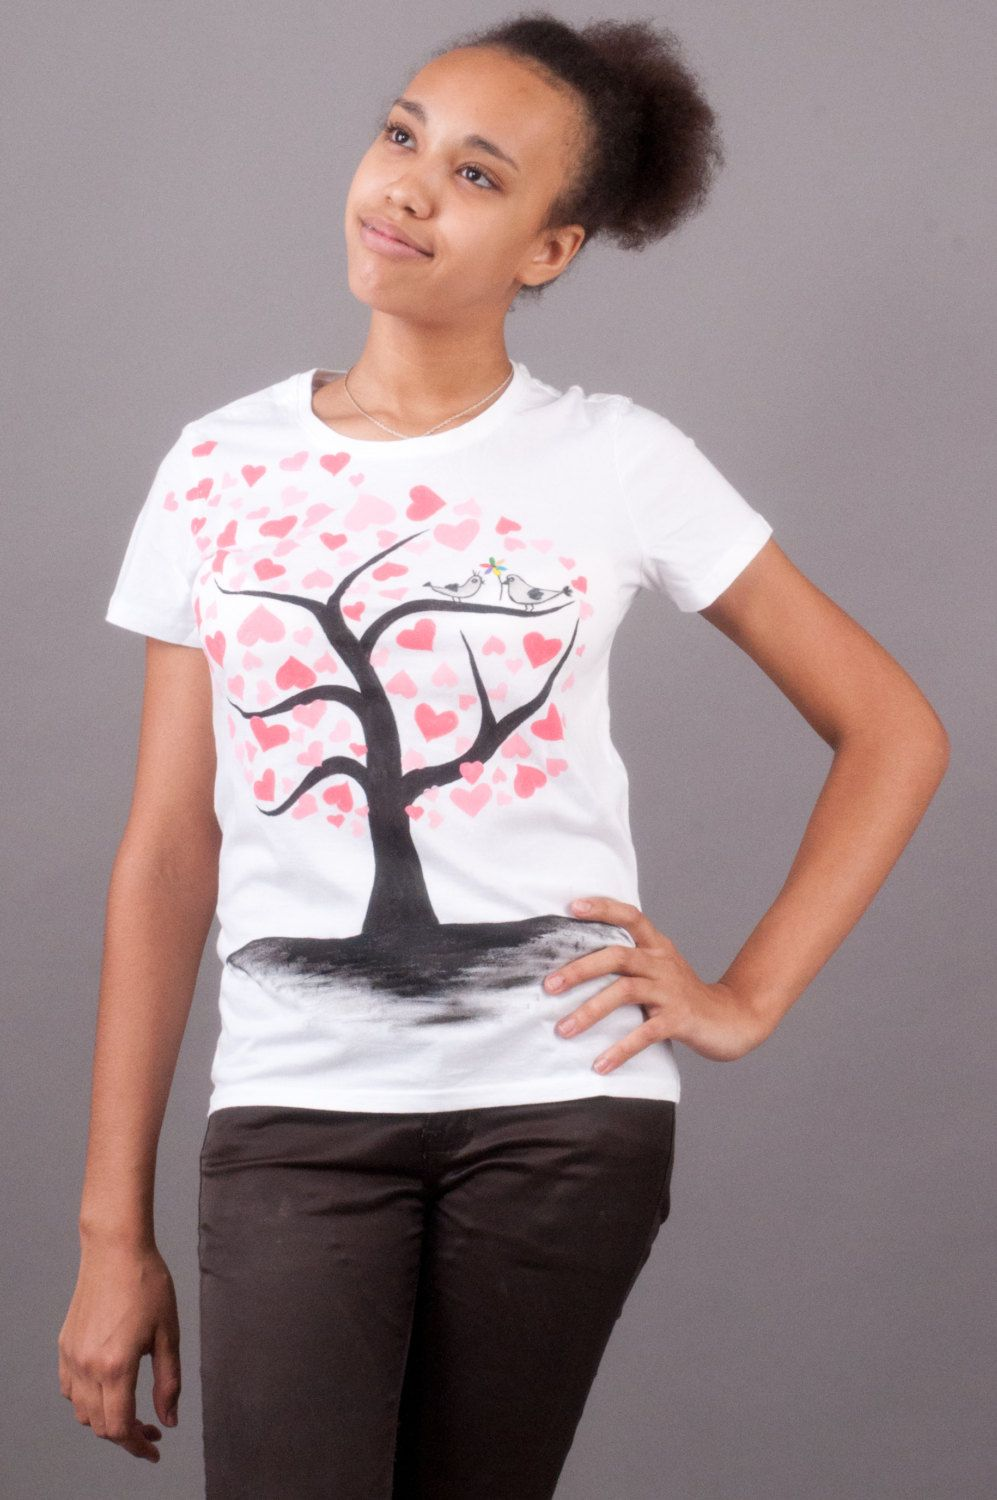 Love tree t-shirt hand painted for women love story birds hearts t shirt t shirt on Valentine's Day. Romantic t shirt (29.00 USD) by OkrasaStyle